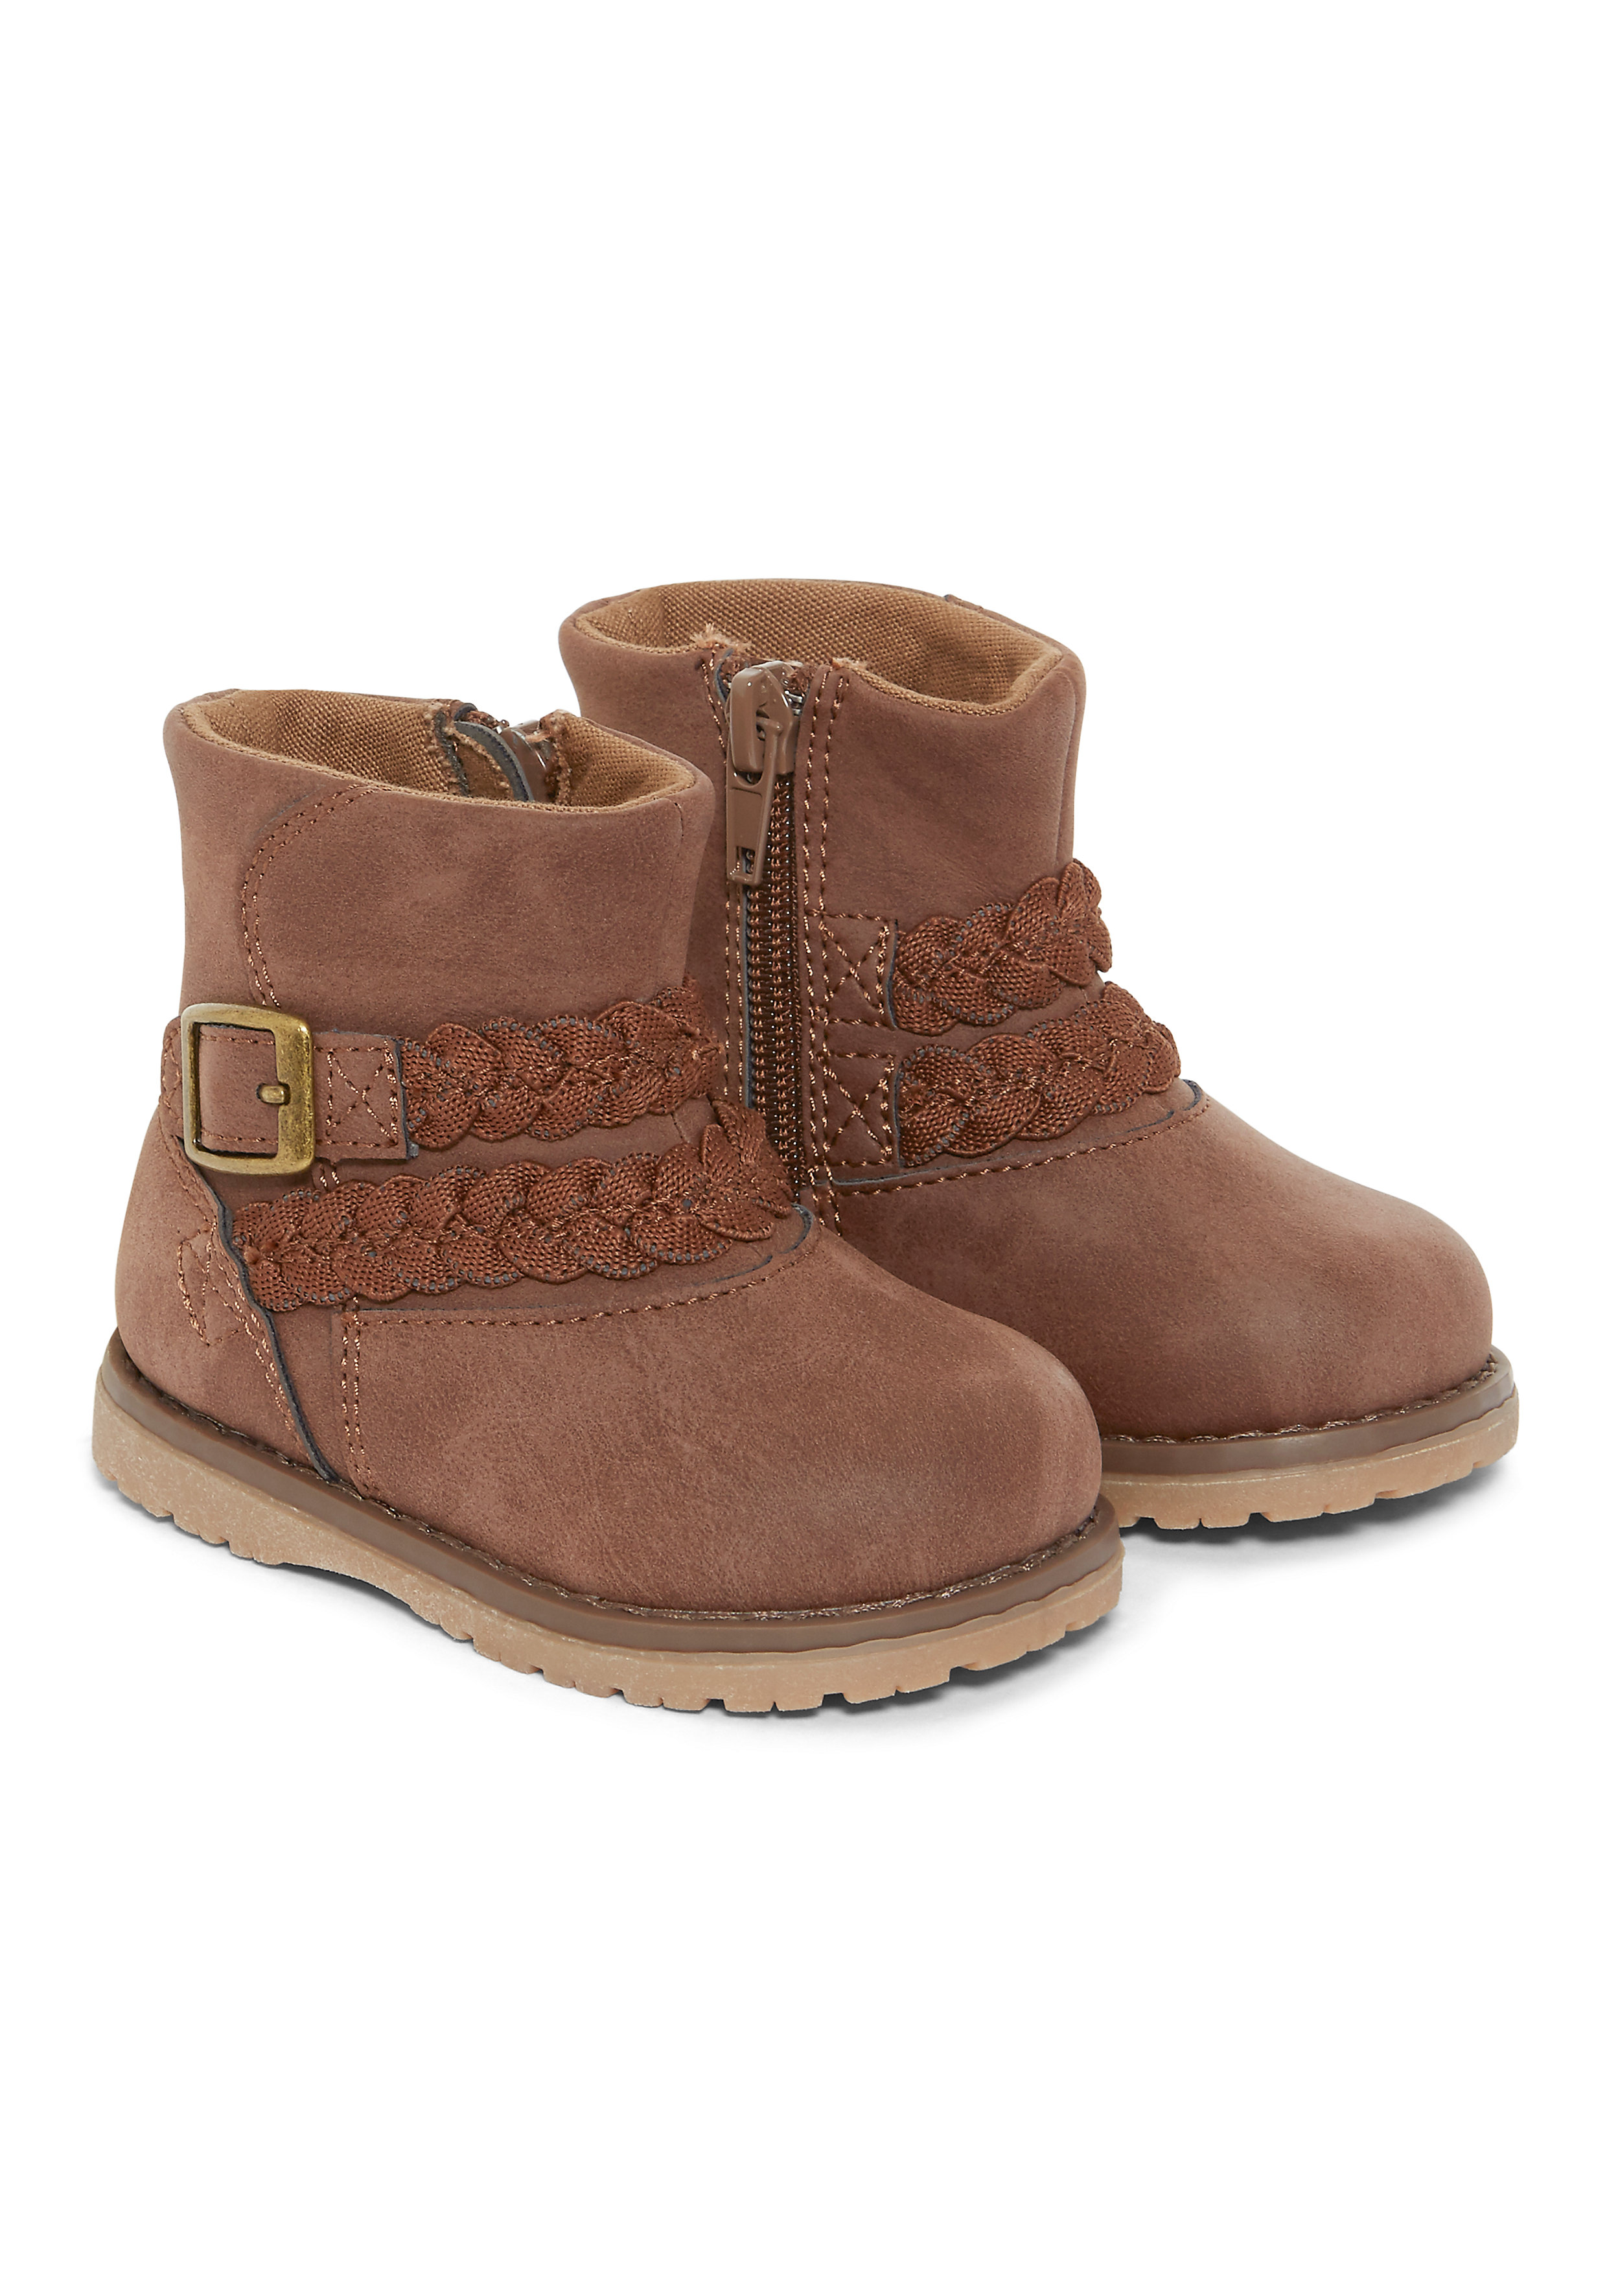 Mothercare | Girls Boots Plaited Design - Brown